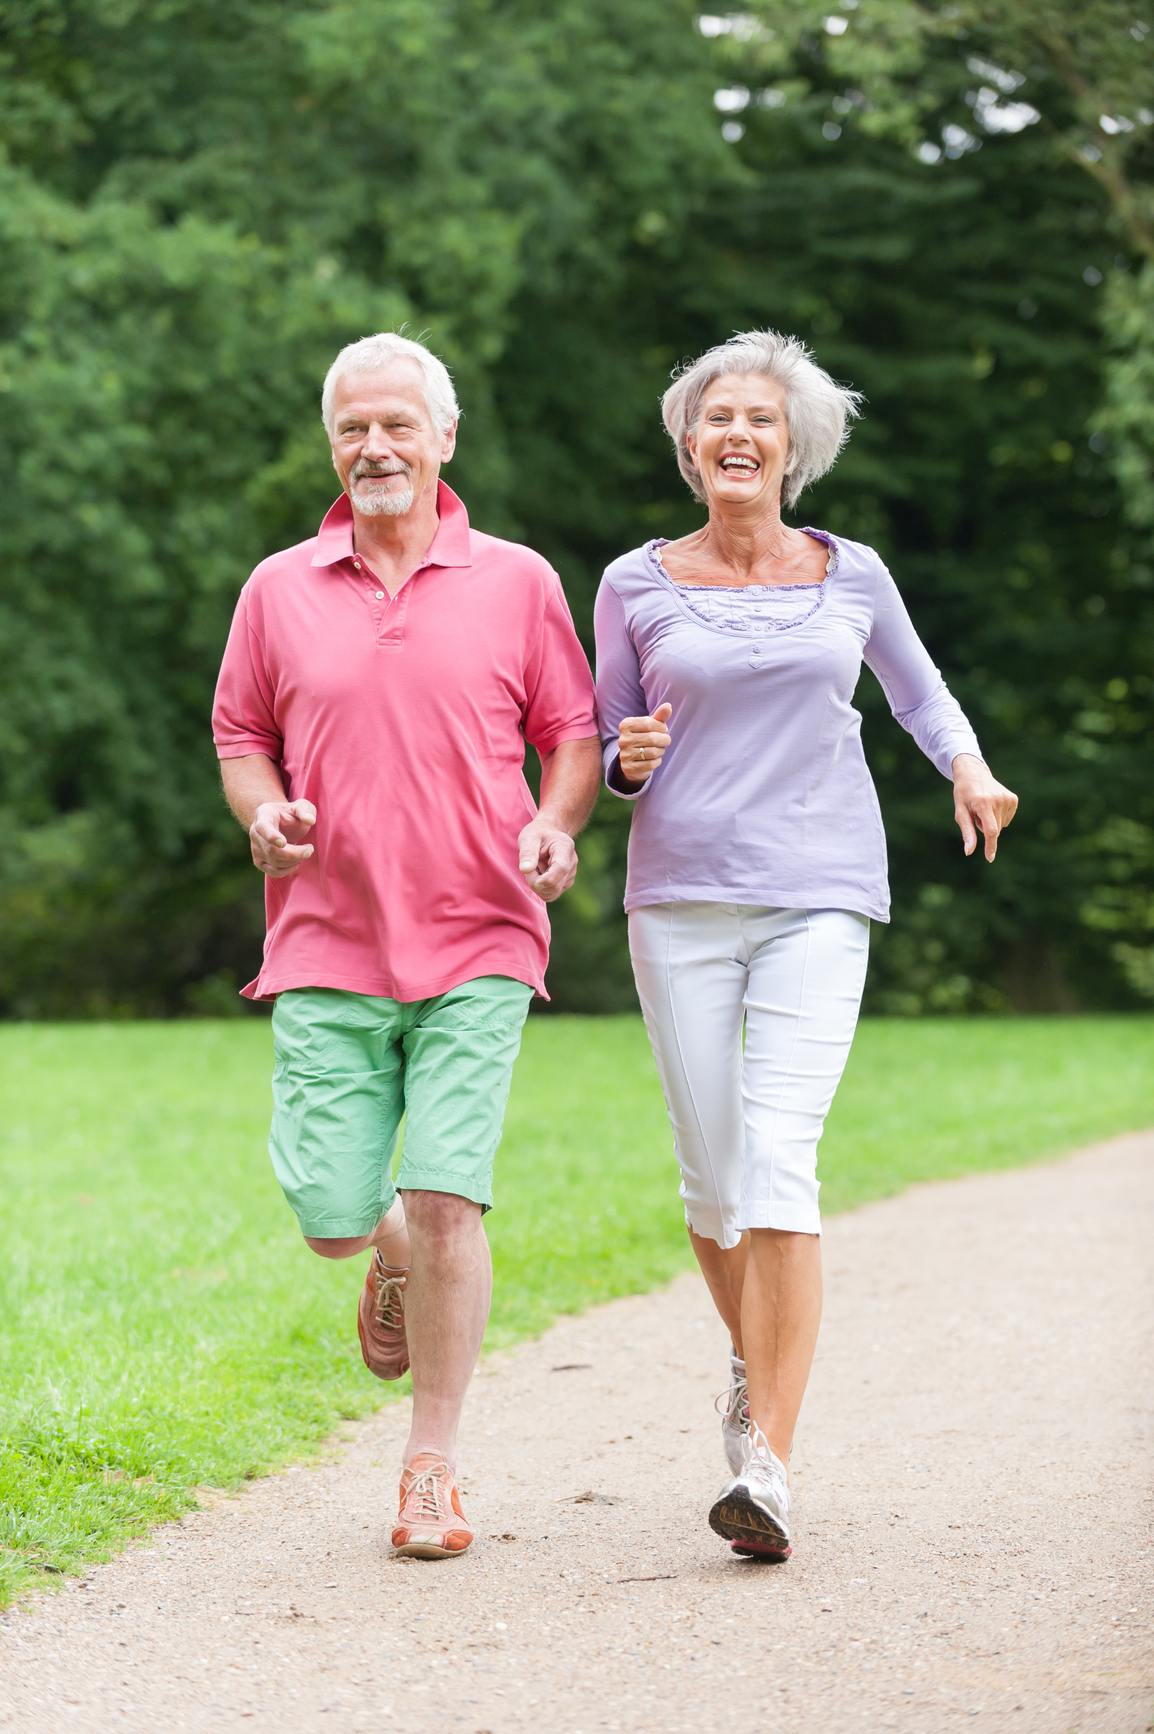 older-man-jogging-with-wife_m